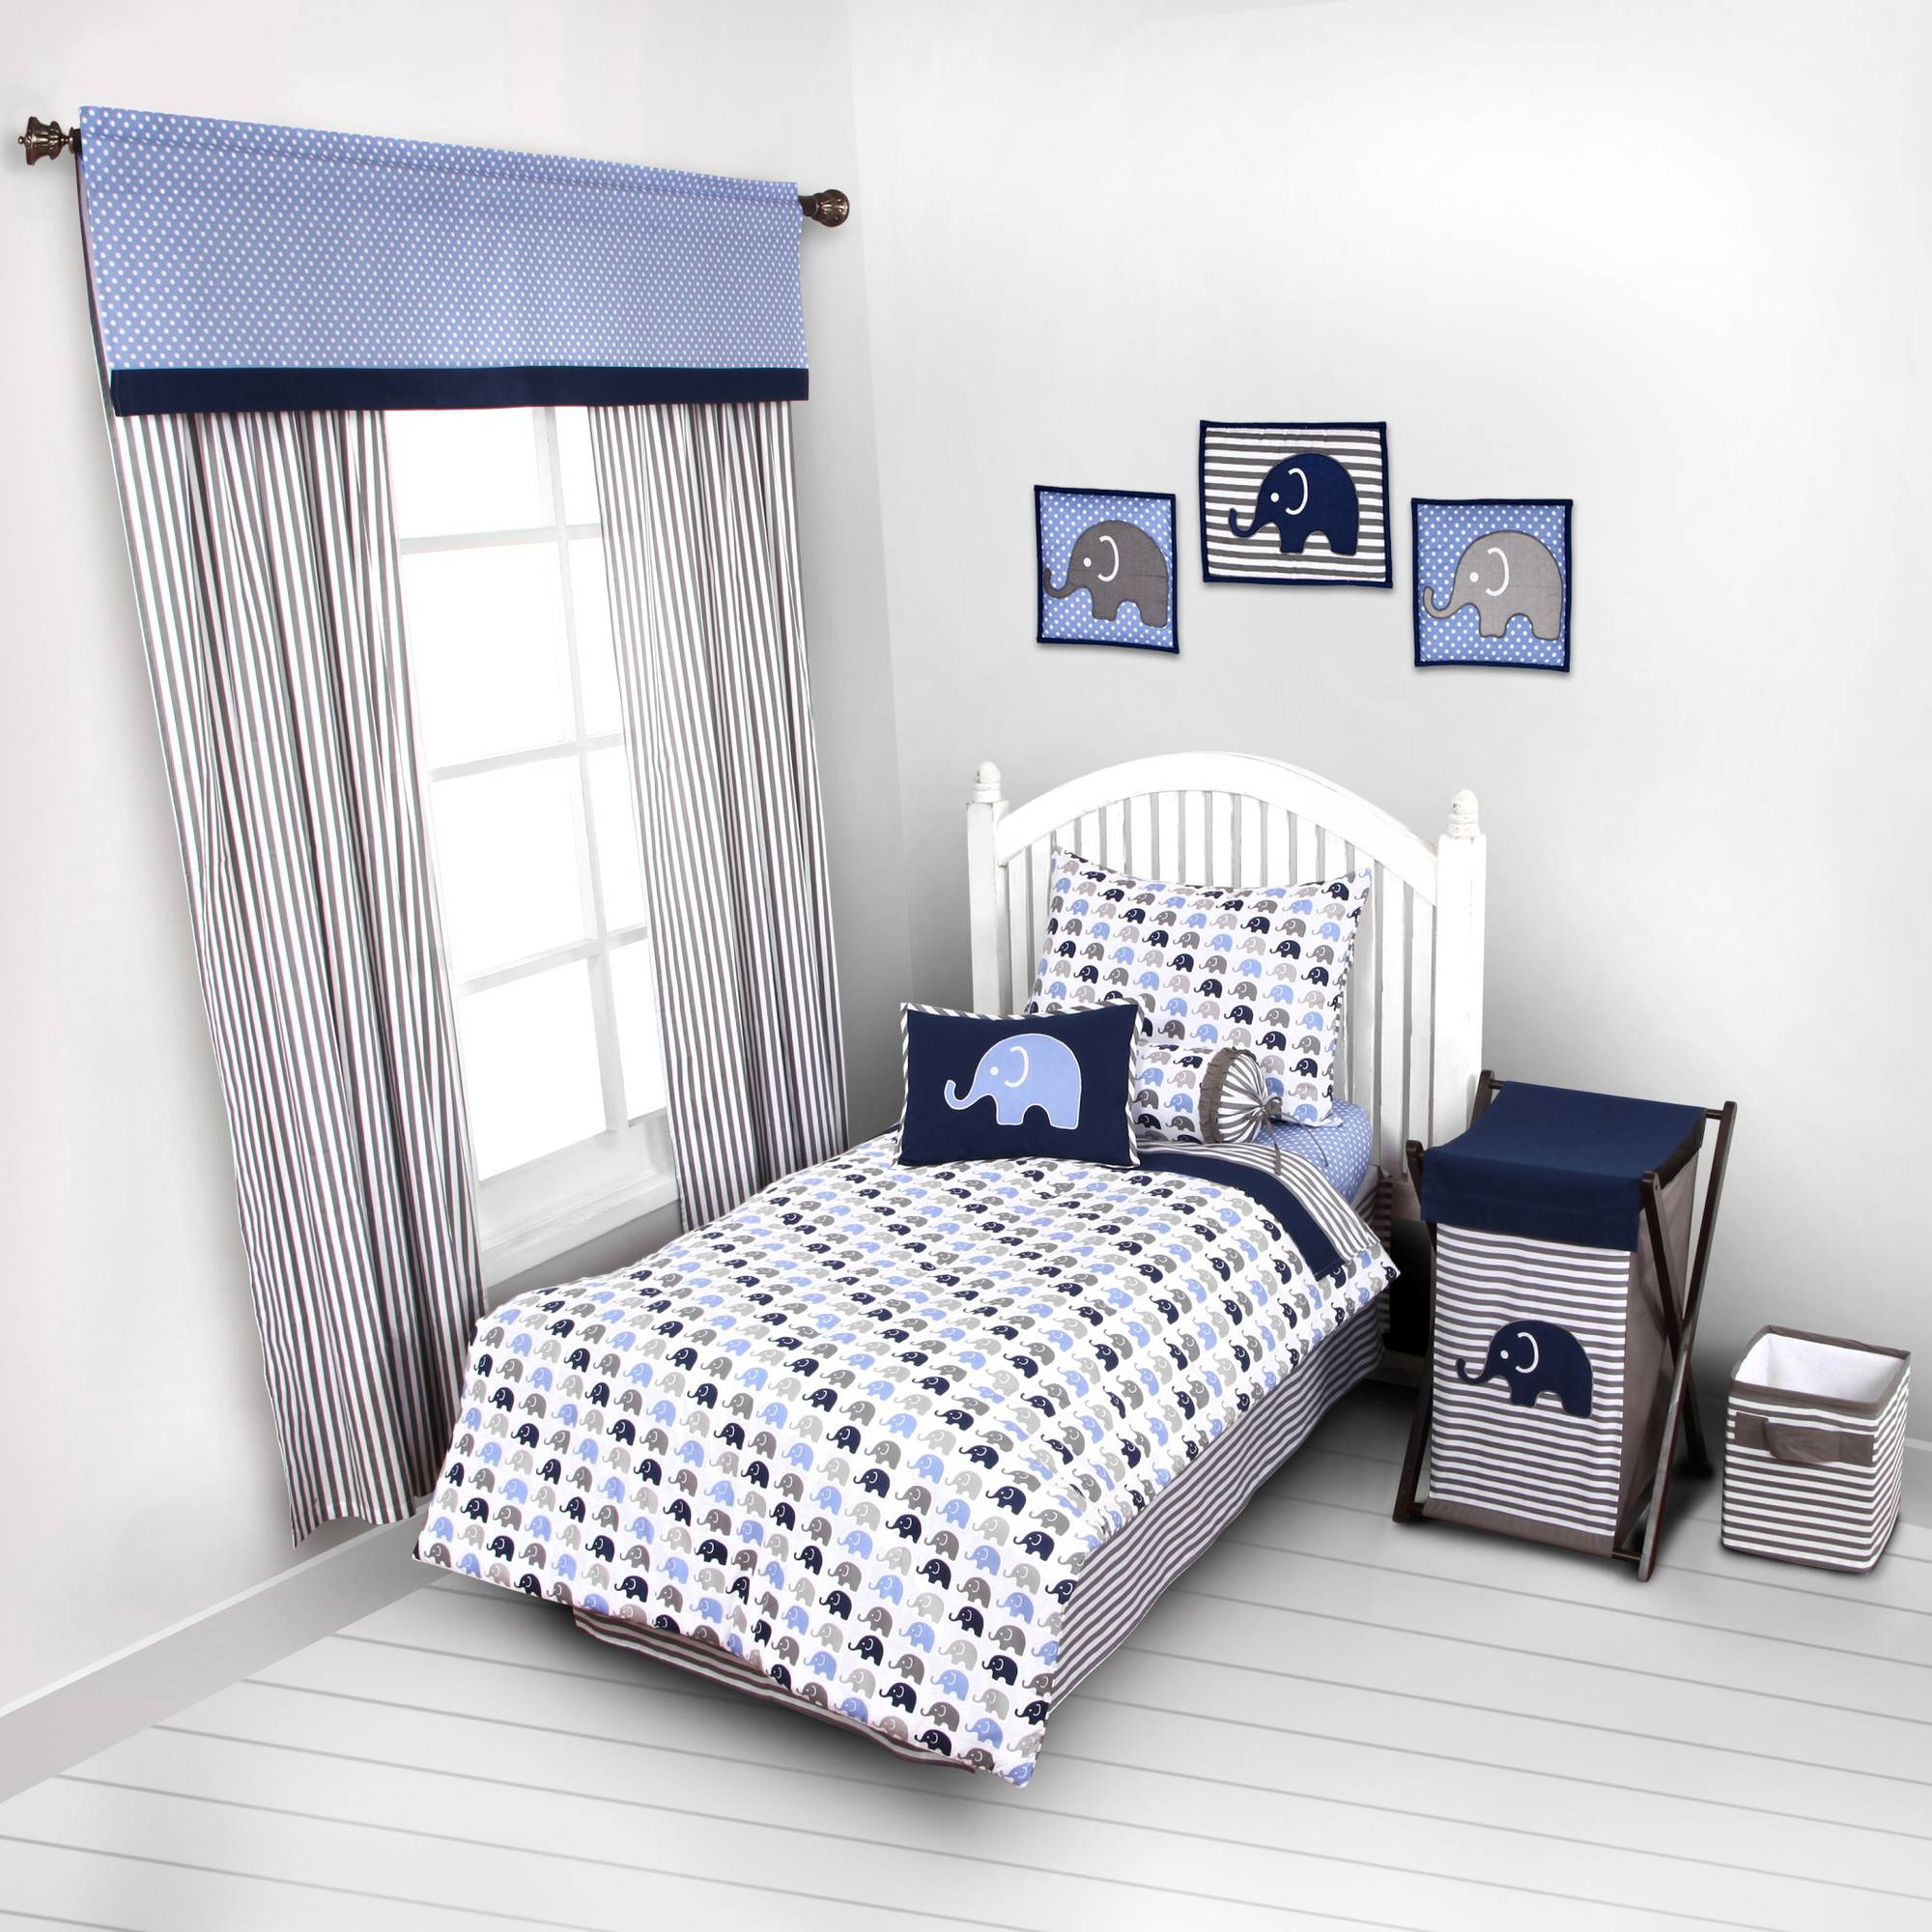 Bacati Elephants 4-Piece Toddler Bedding set 100% Cotton percale,  Blue/Gray